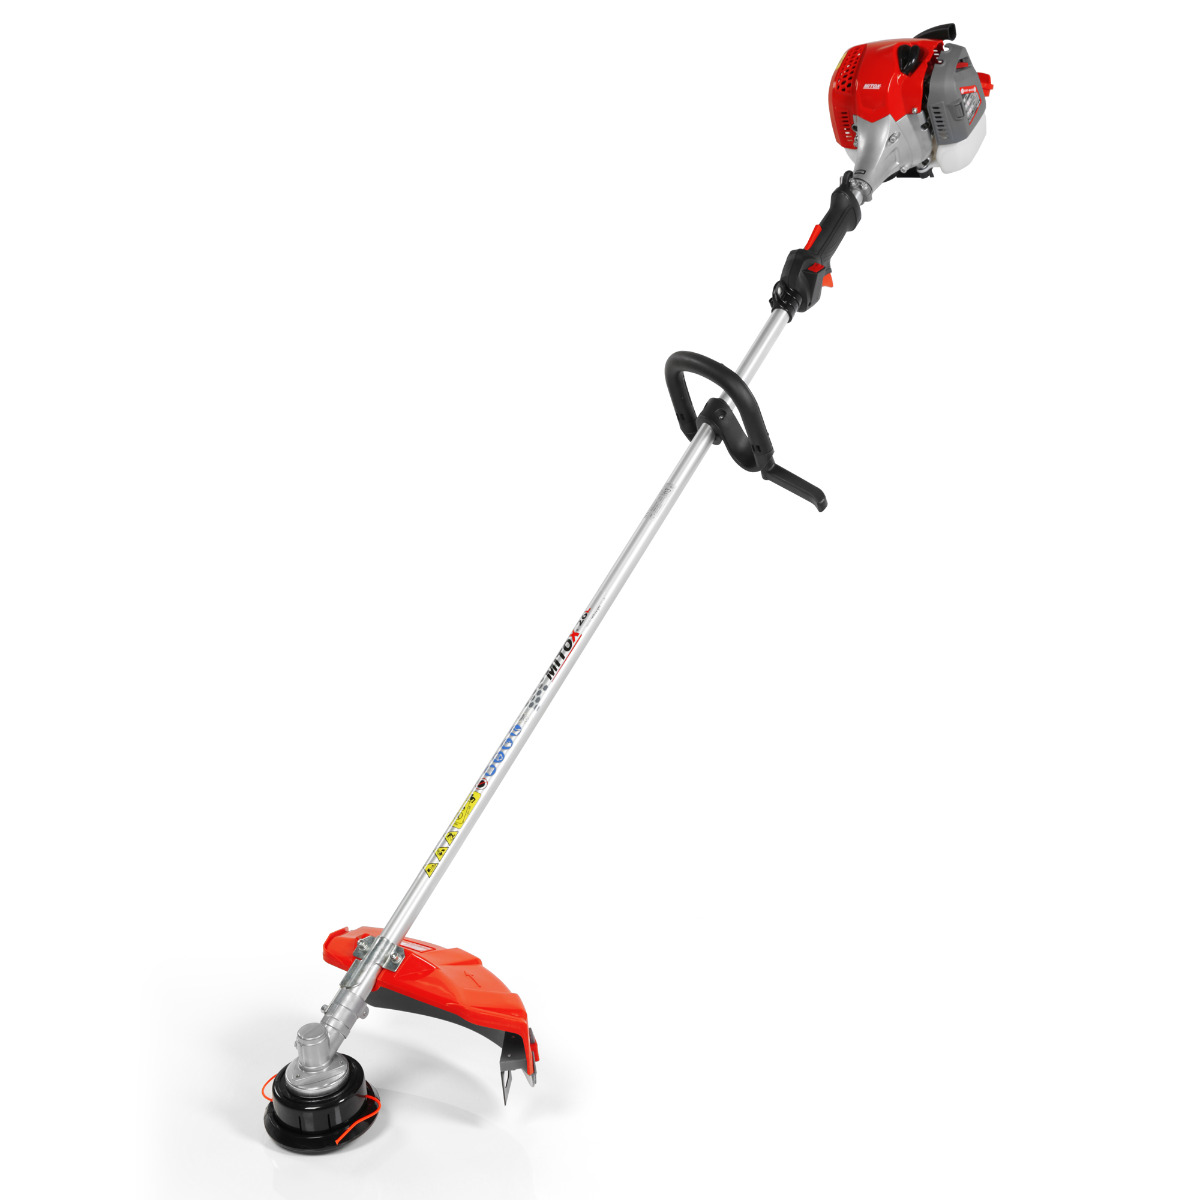 Mitox 26L-A Select Petrol Strimmer